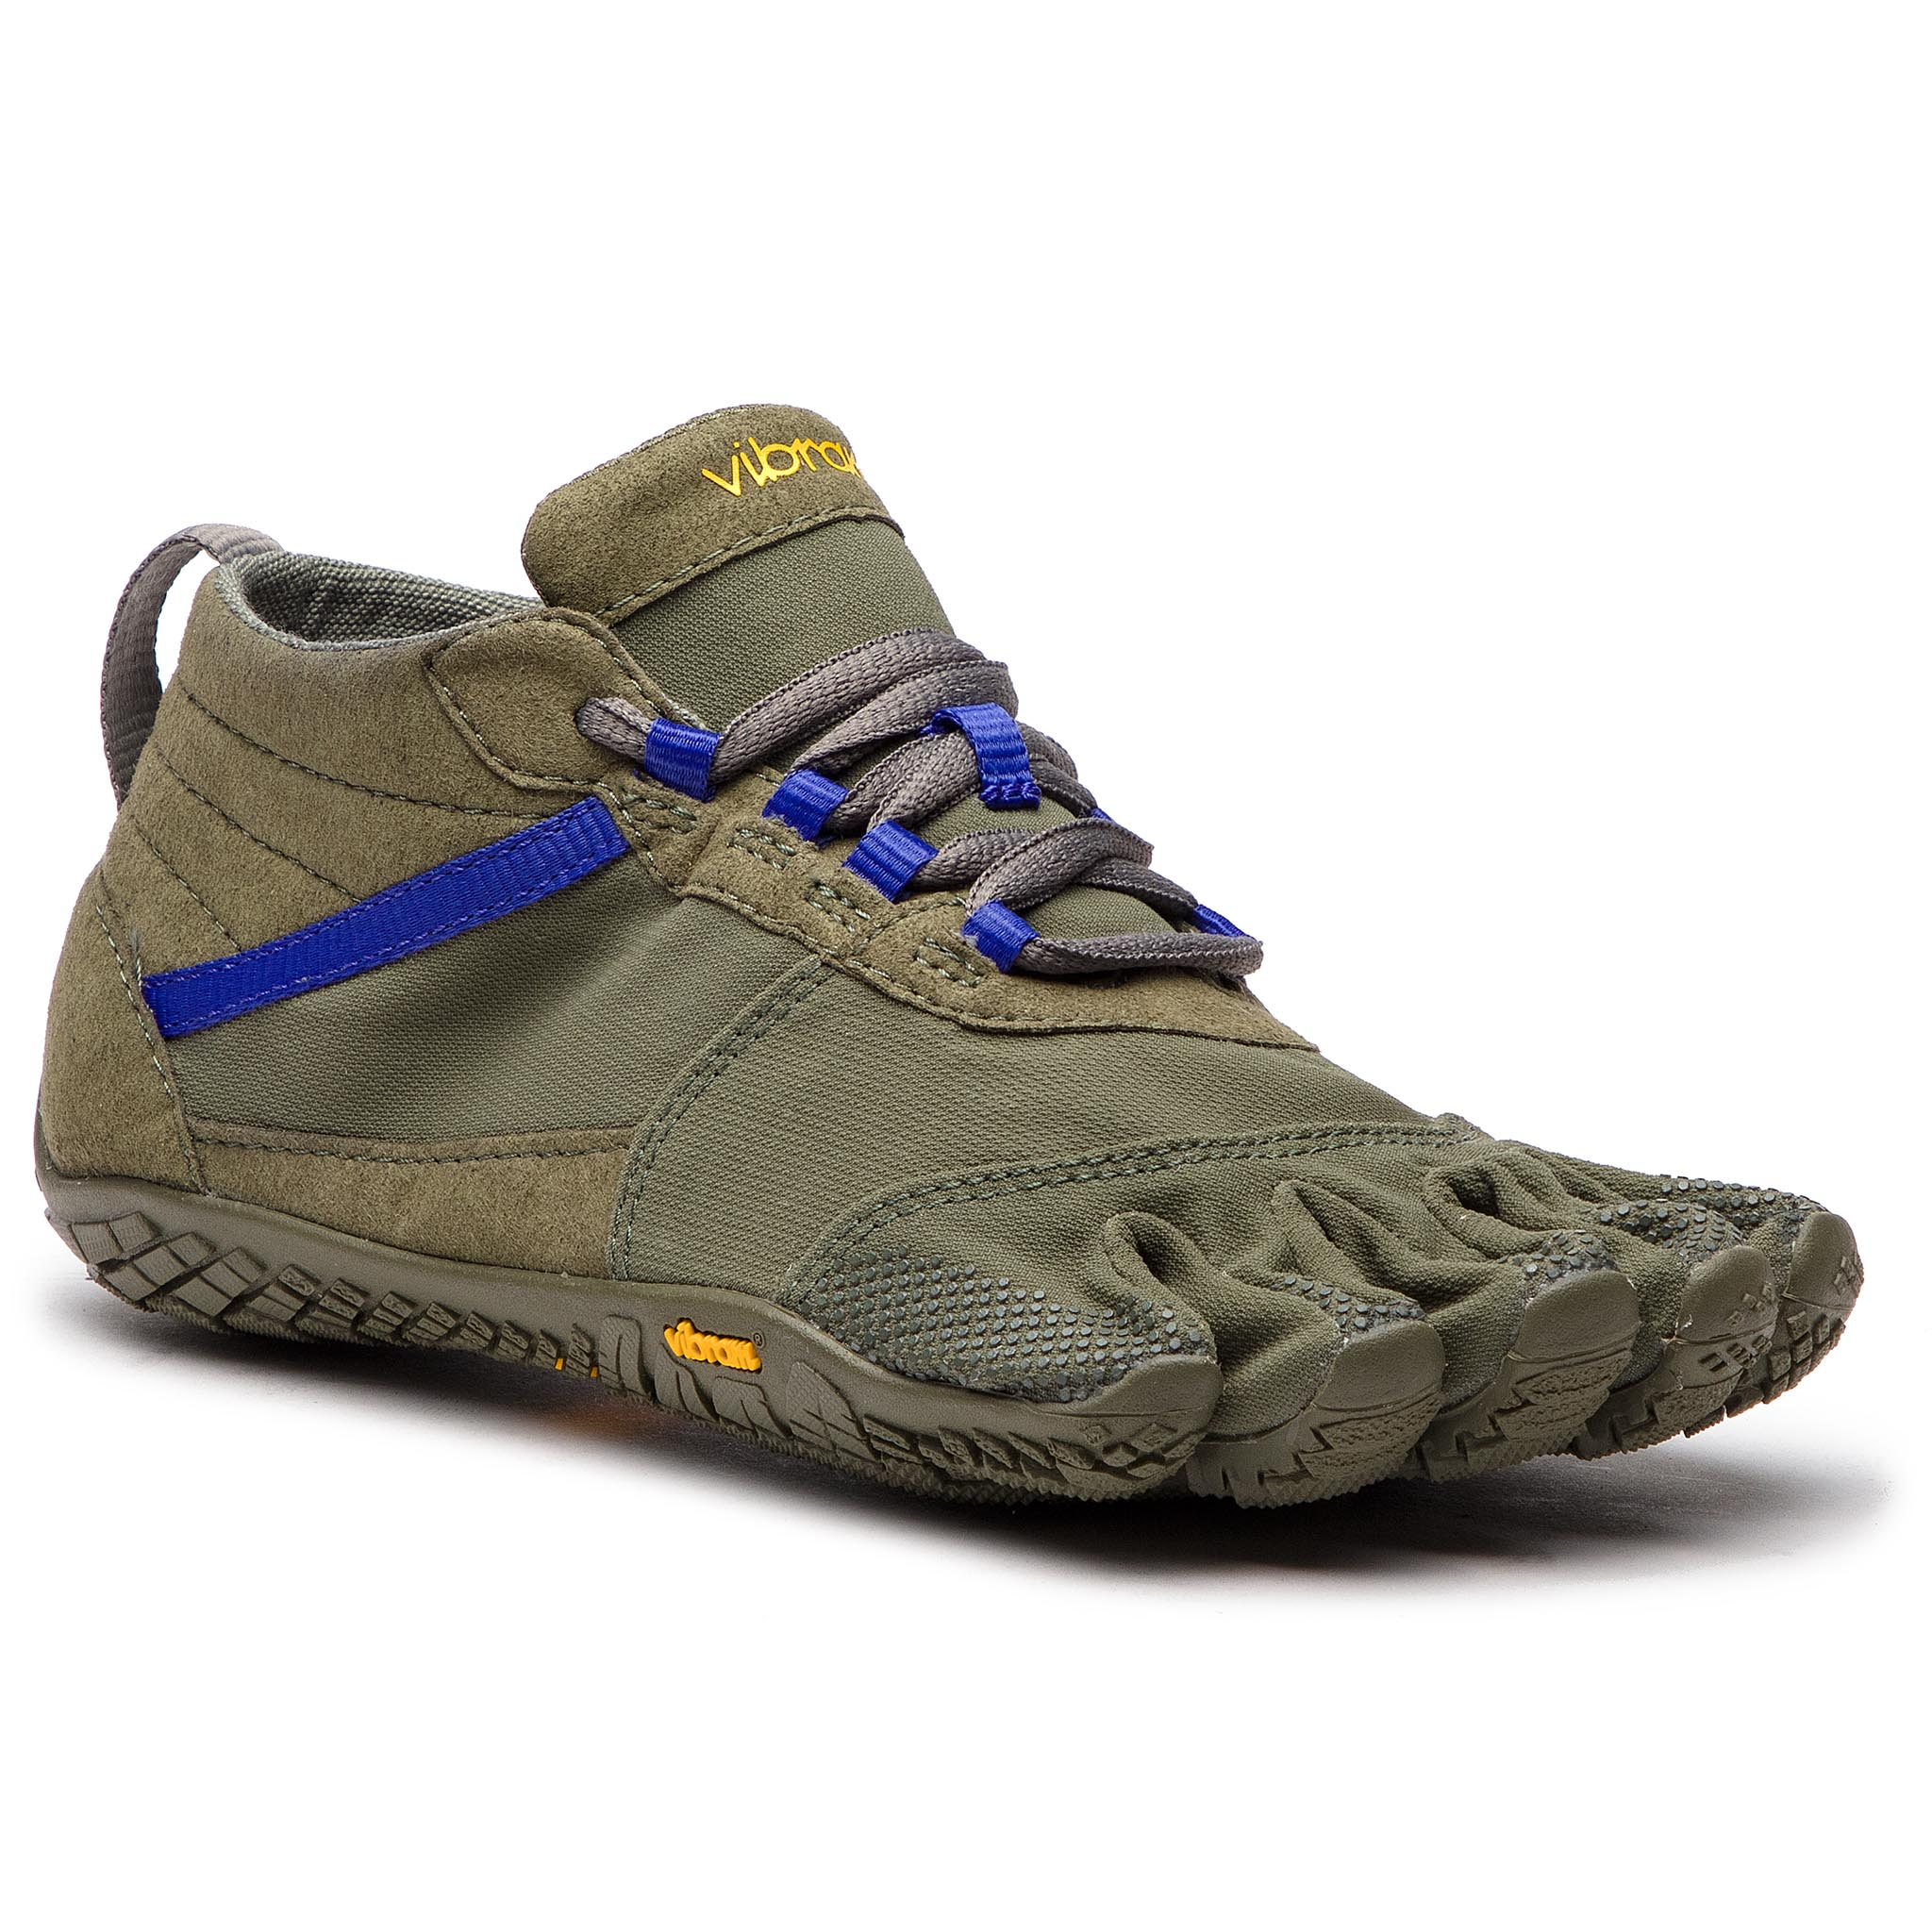 Pantofi Vibram Fivefingers - V-Trek 18w7402 Military/Purple imagine epantofi.ro 2021